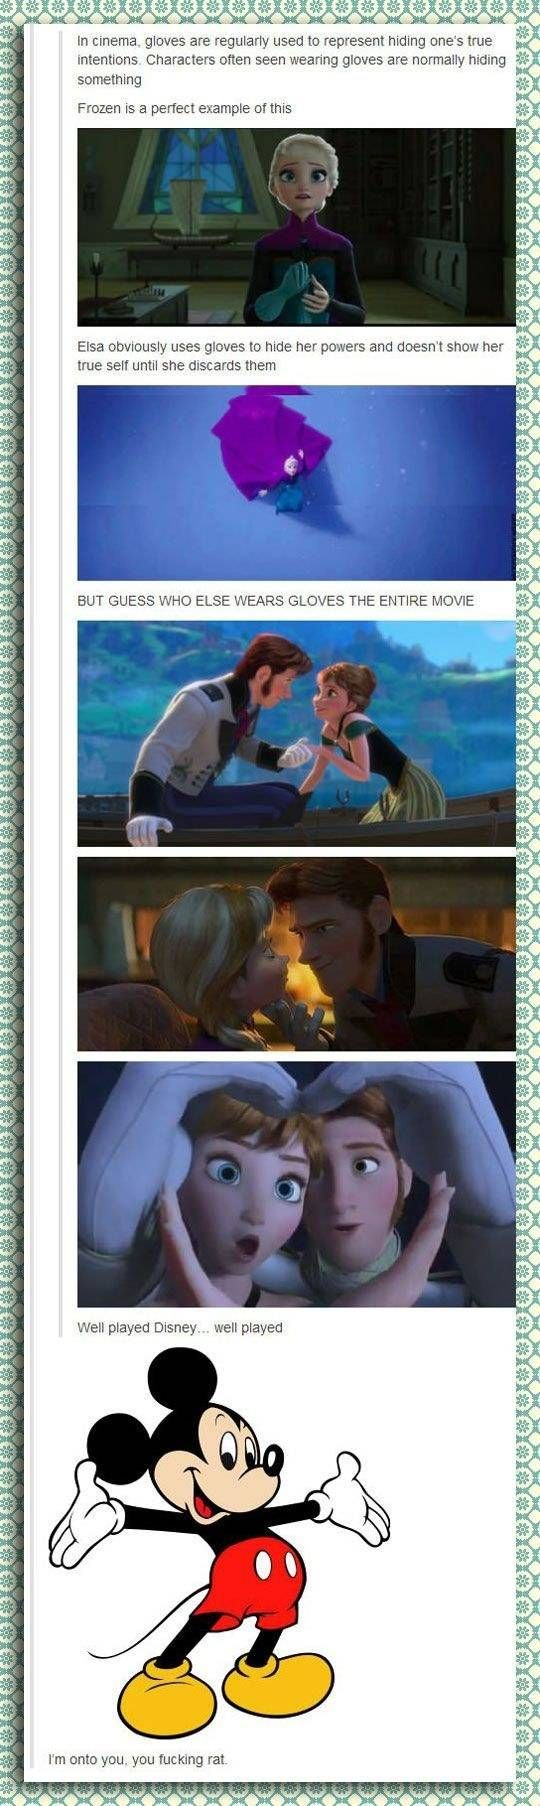 31 Things Tumblr Users Noticed About Disney Movies That No One Else Did - Dose - Your Daily Dose of Amazing